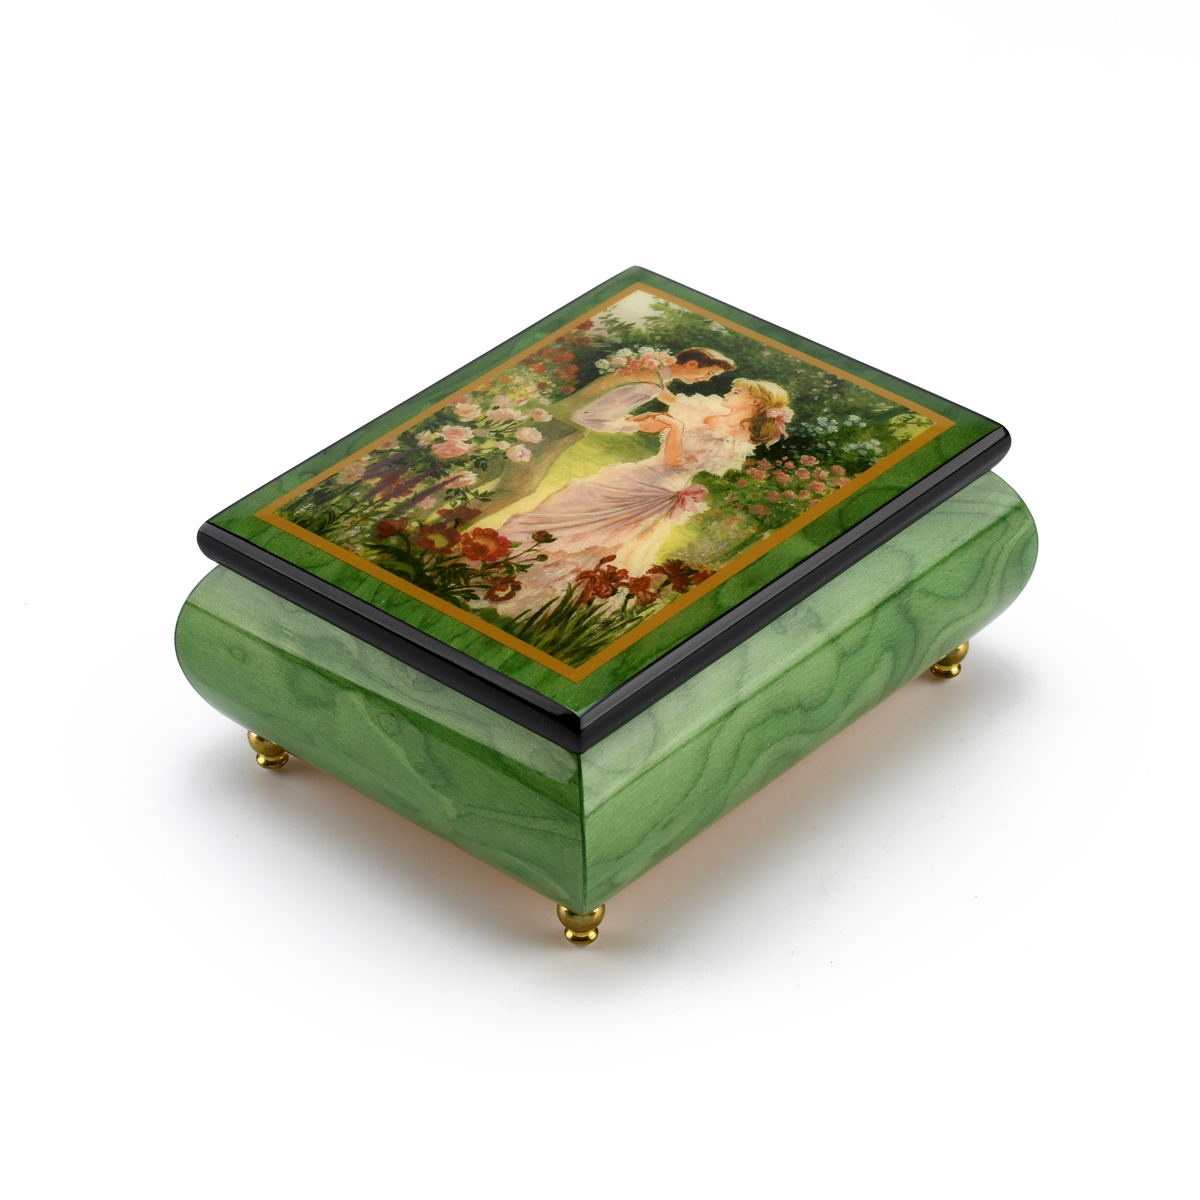 Alluring Forest Green Ercolano Music Jewelry Box - Summers Meeting by Brenda Burke